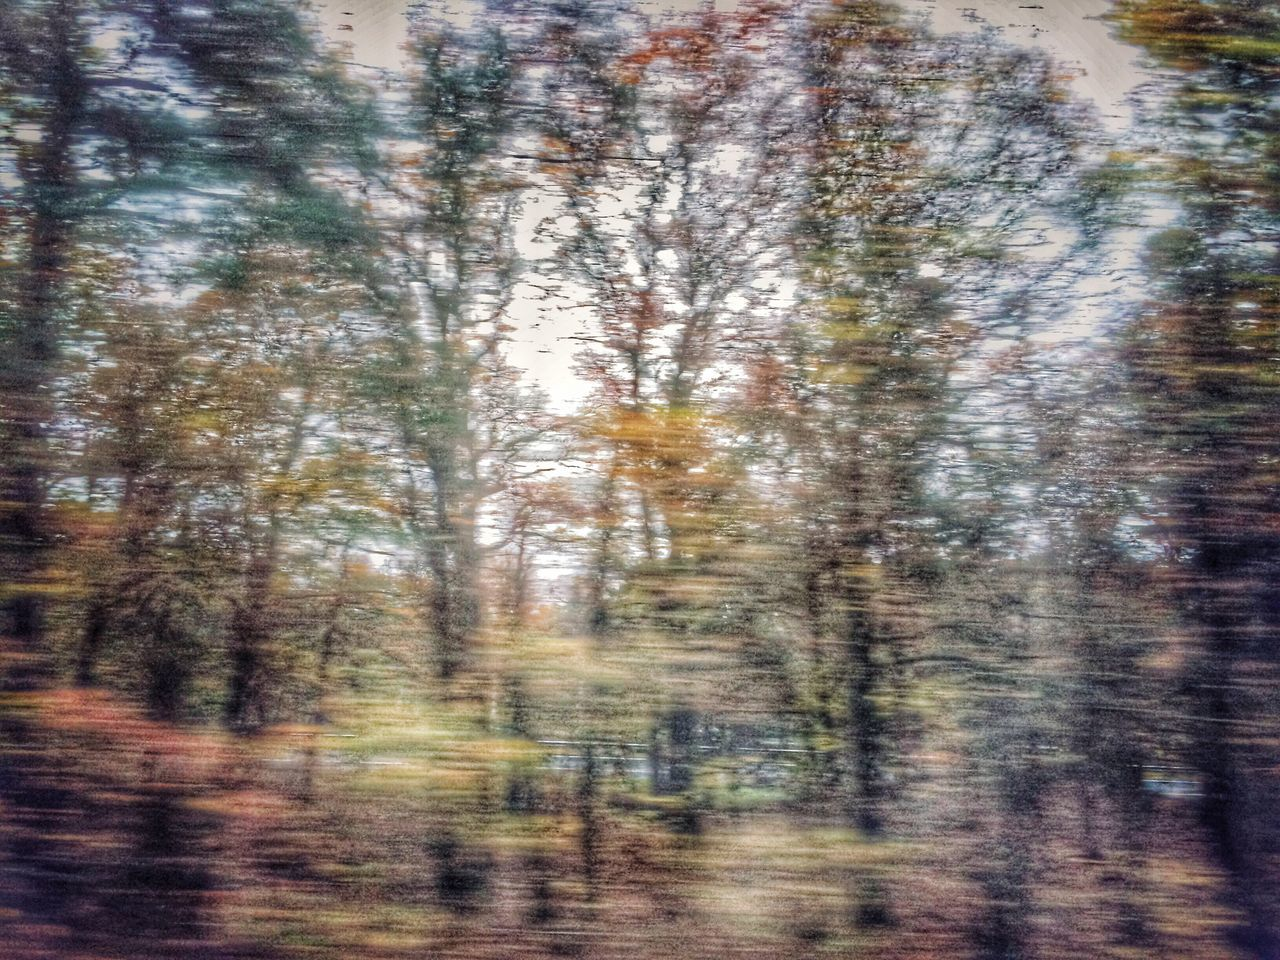 forest, nature, tree, no people, scenics, day, blurred motion, outdoors, beauty in nature, sky